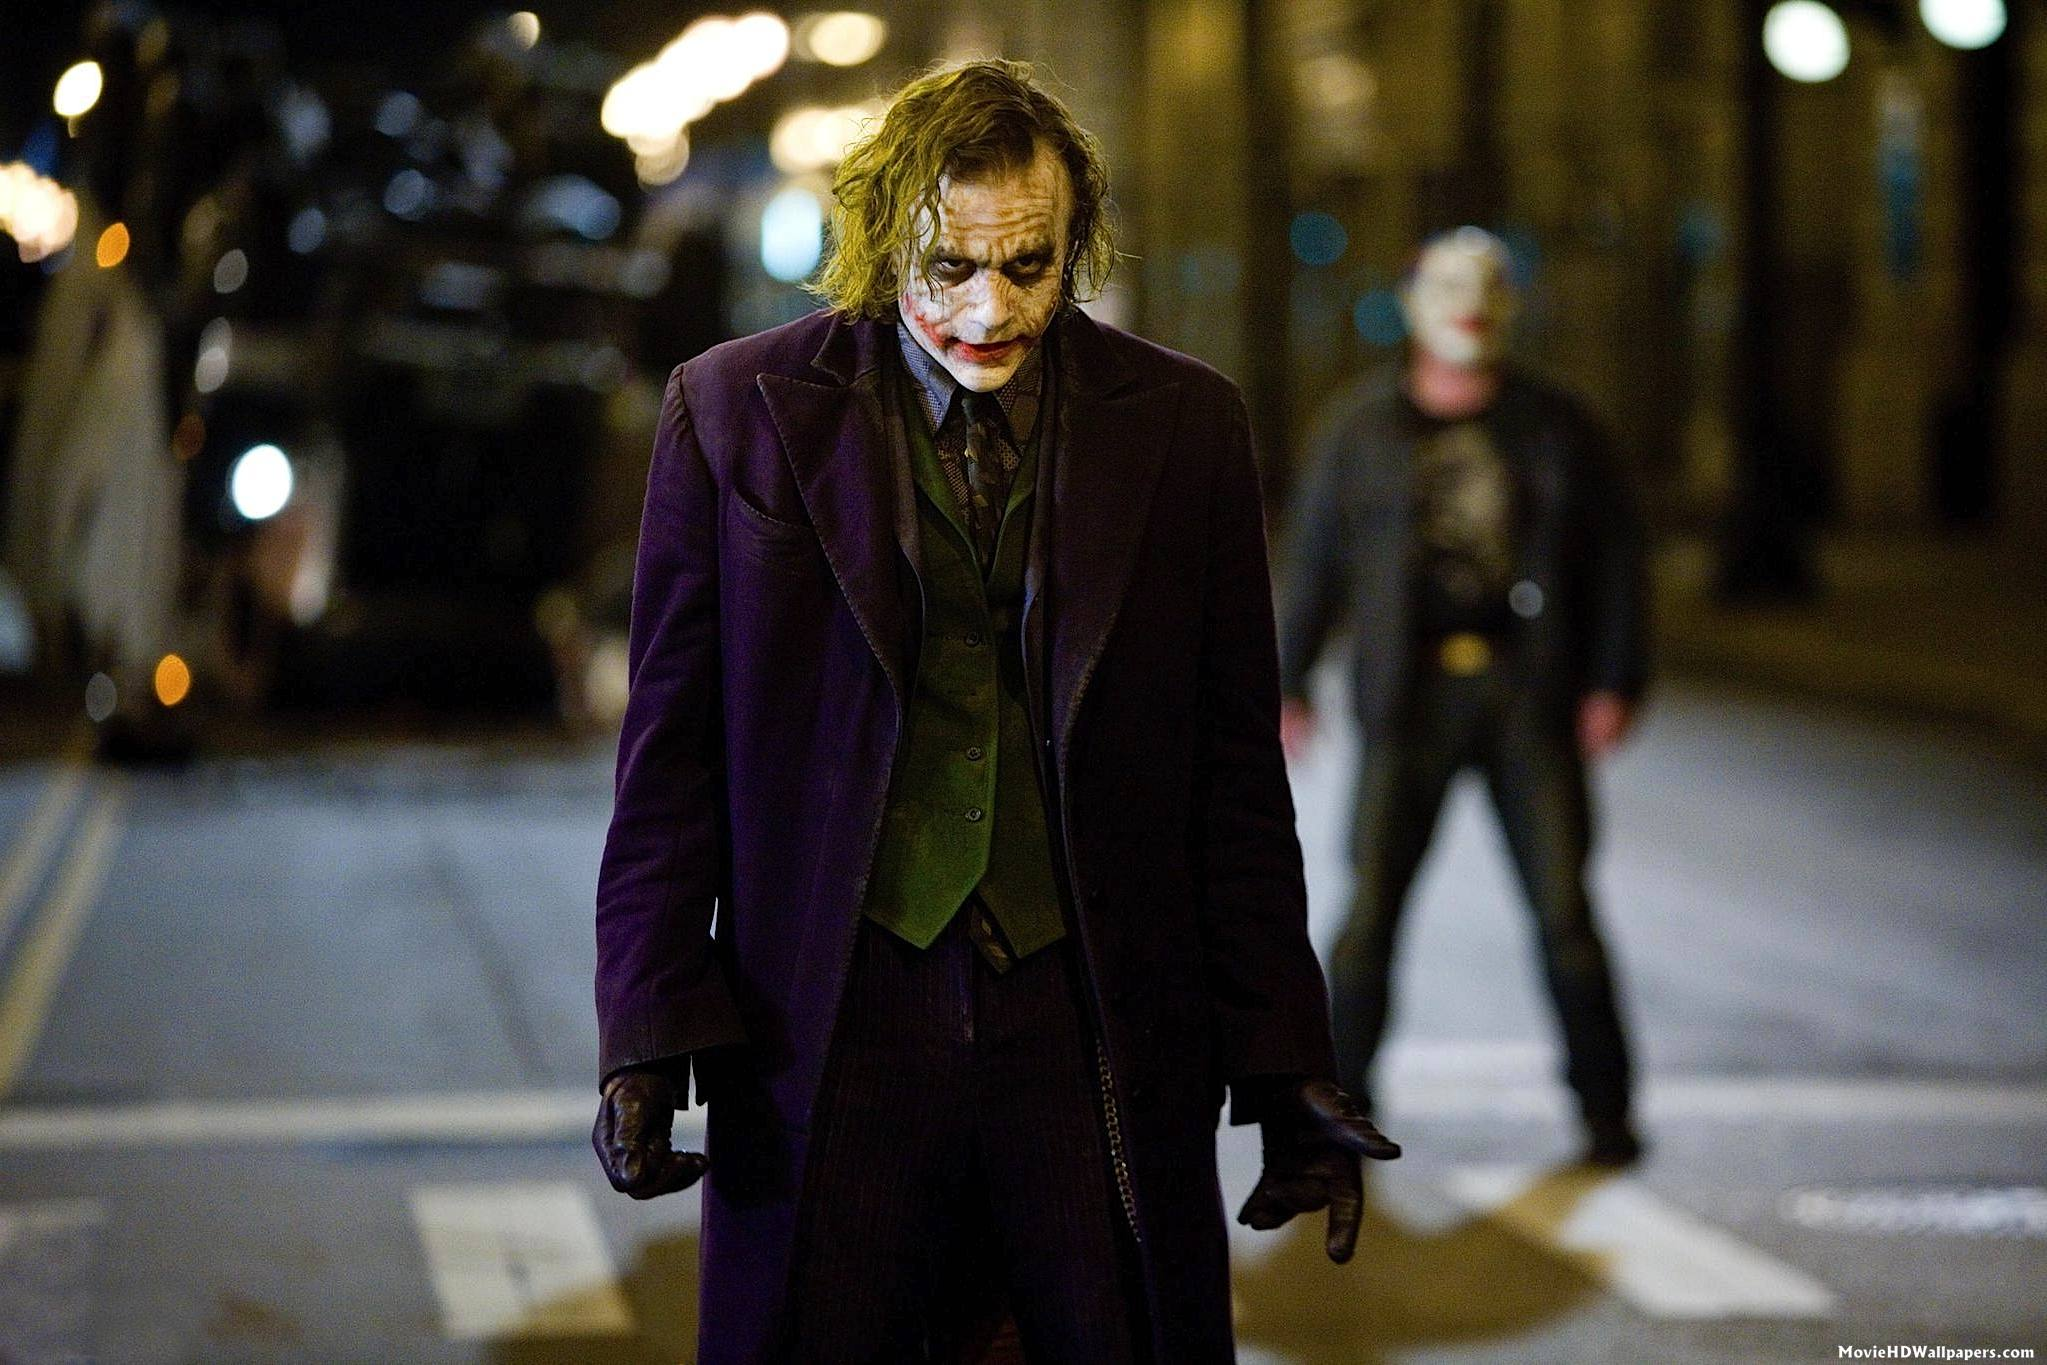 Batman Movie Joker Wallpaper | Movie HD Wallpapers